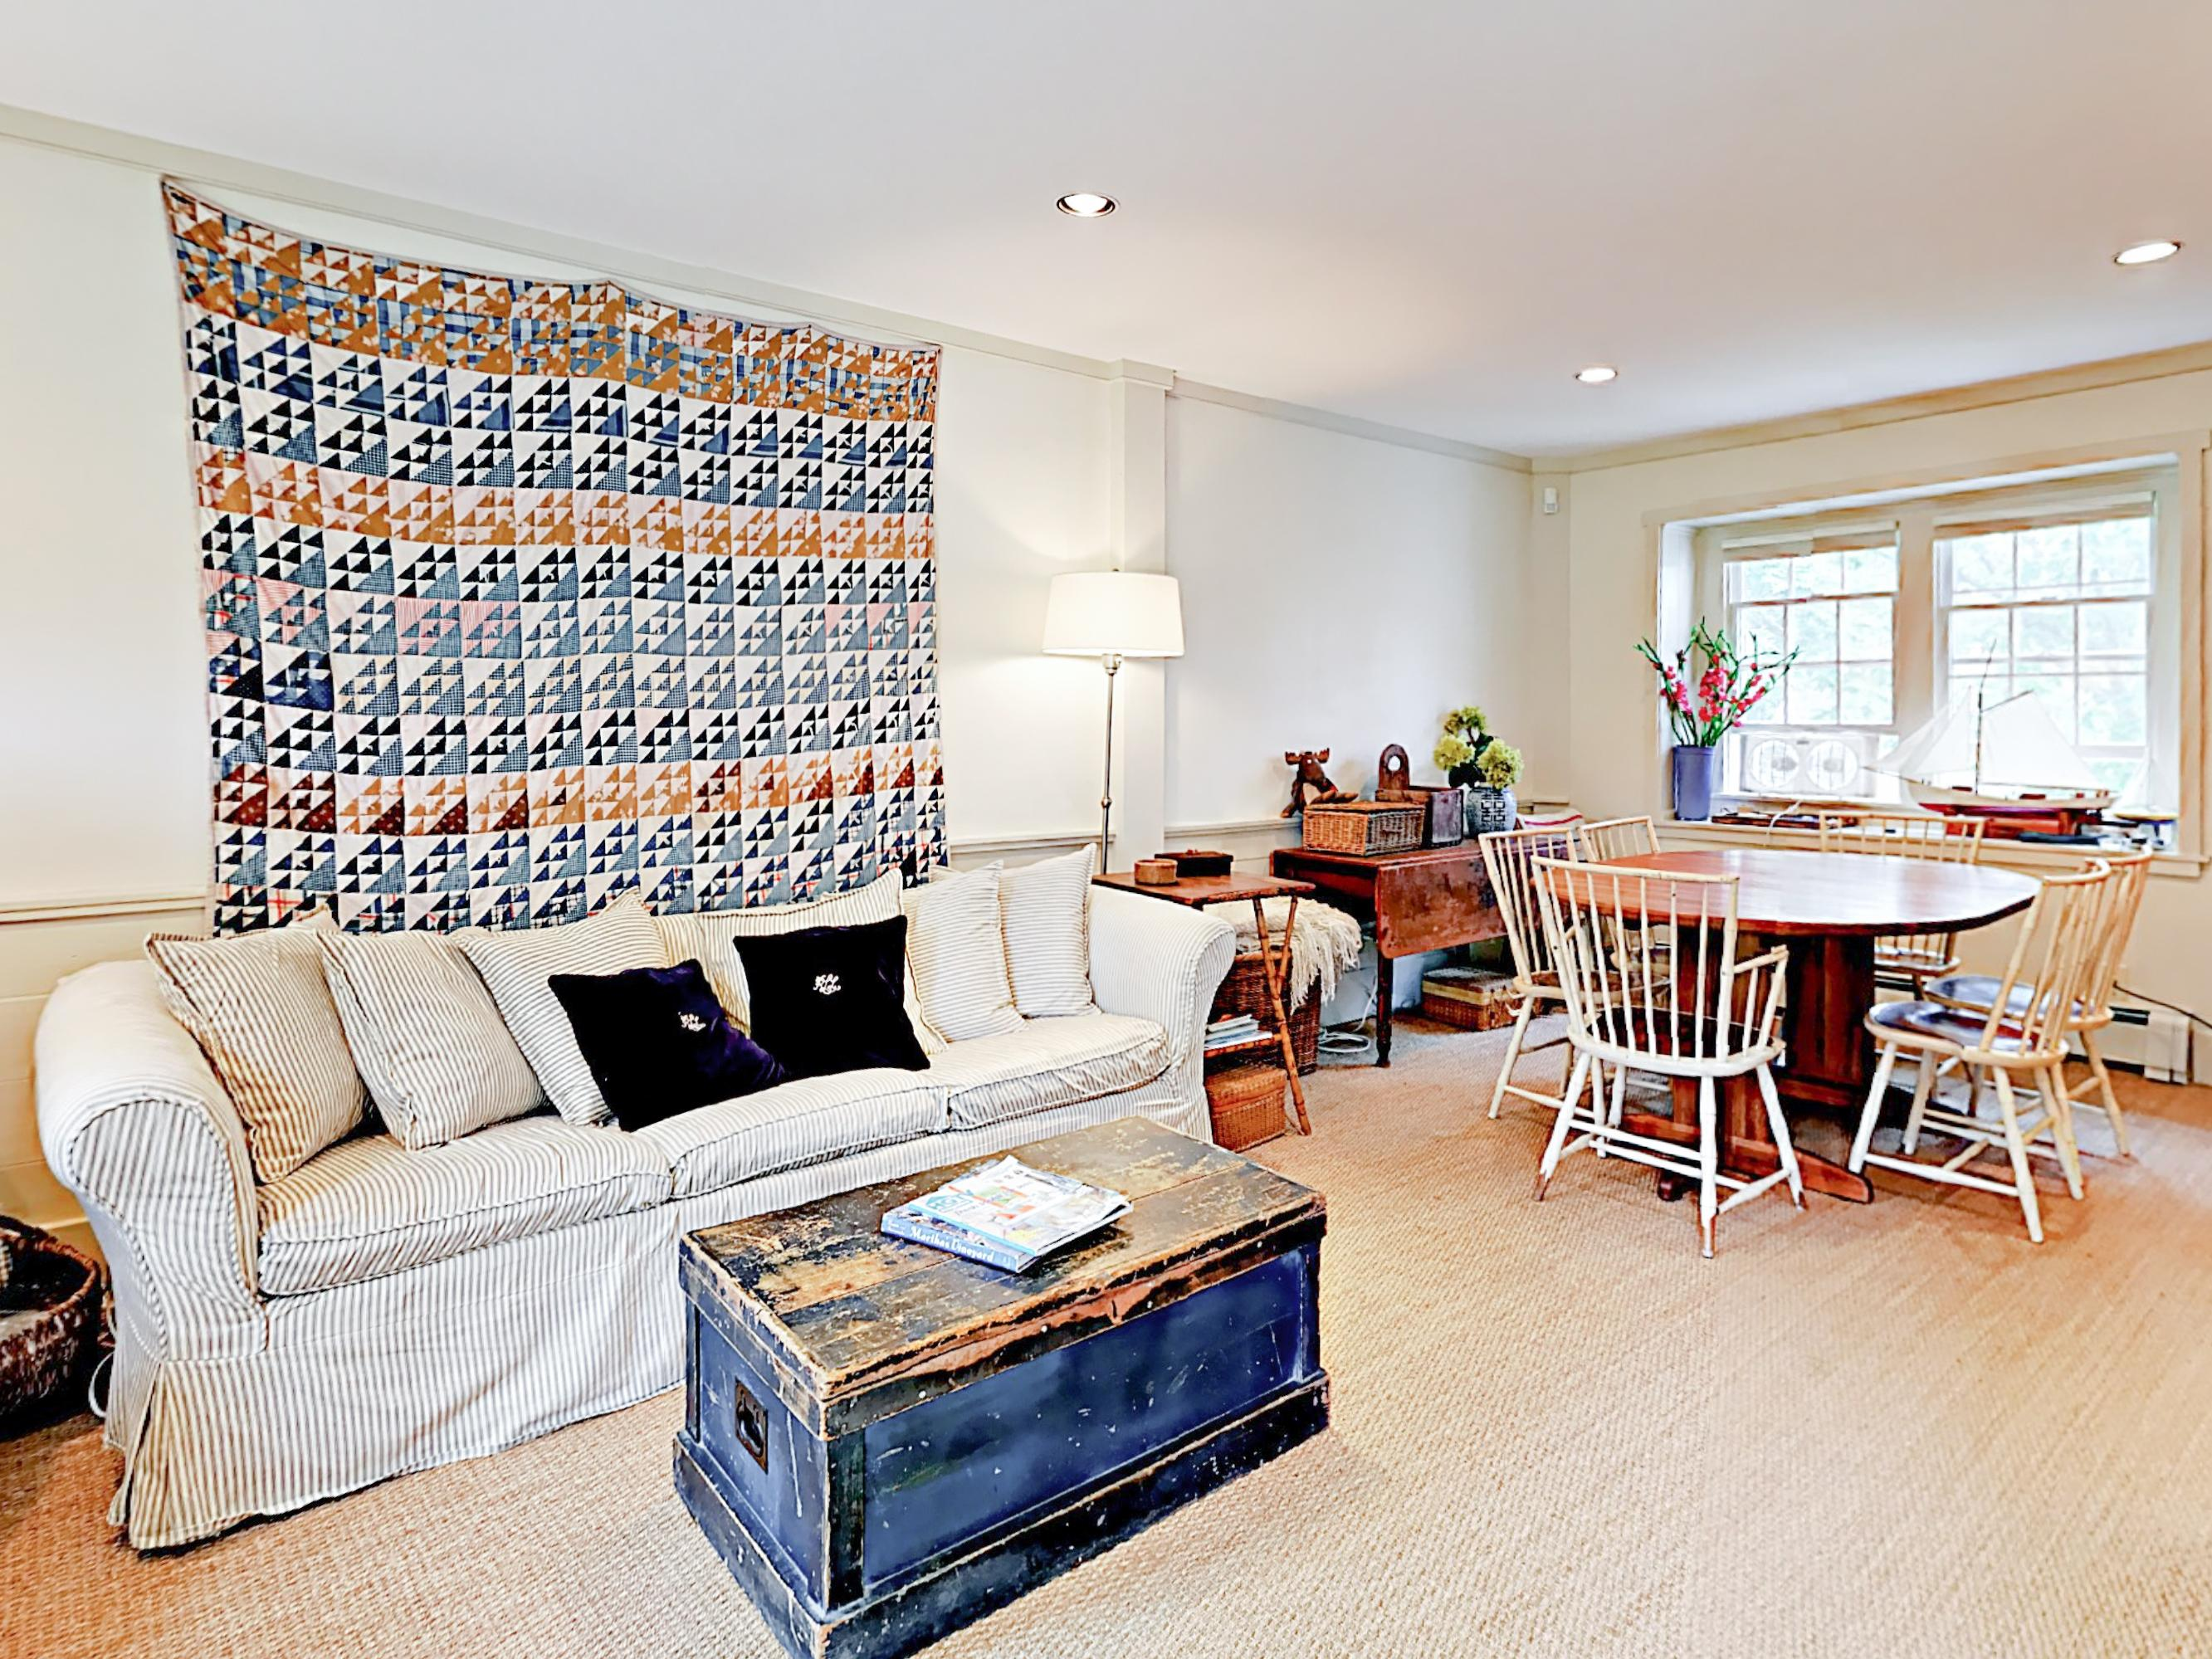 Nautical accents fill the rental with a classic beach vibe.